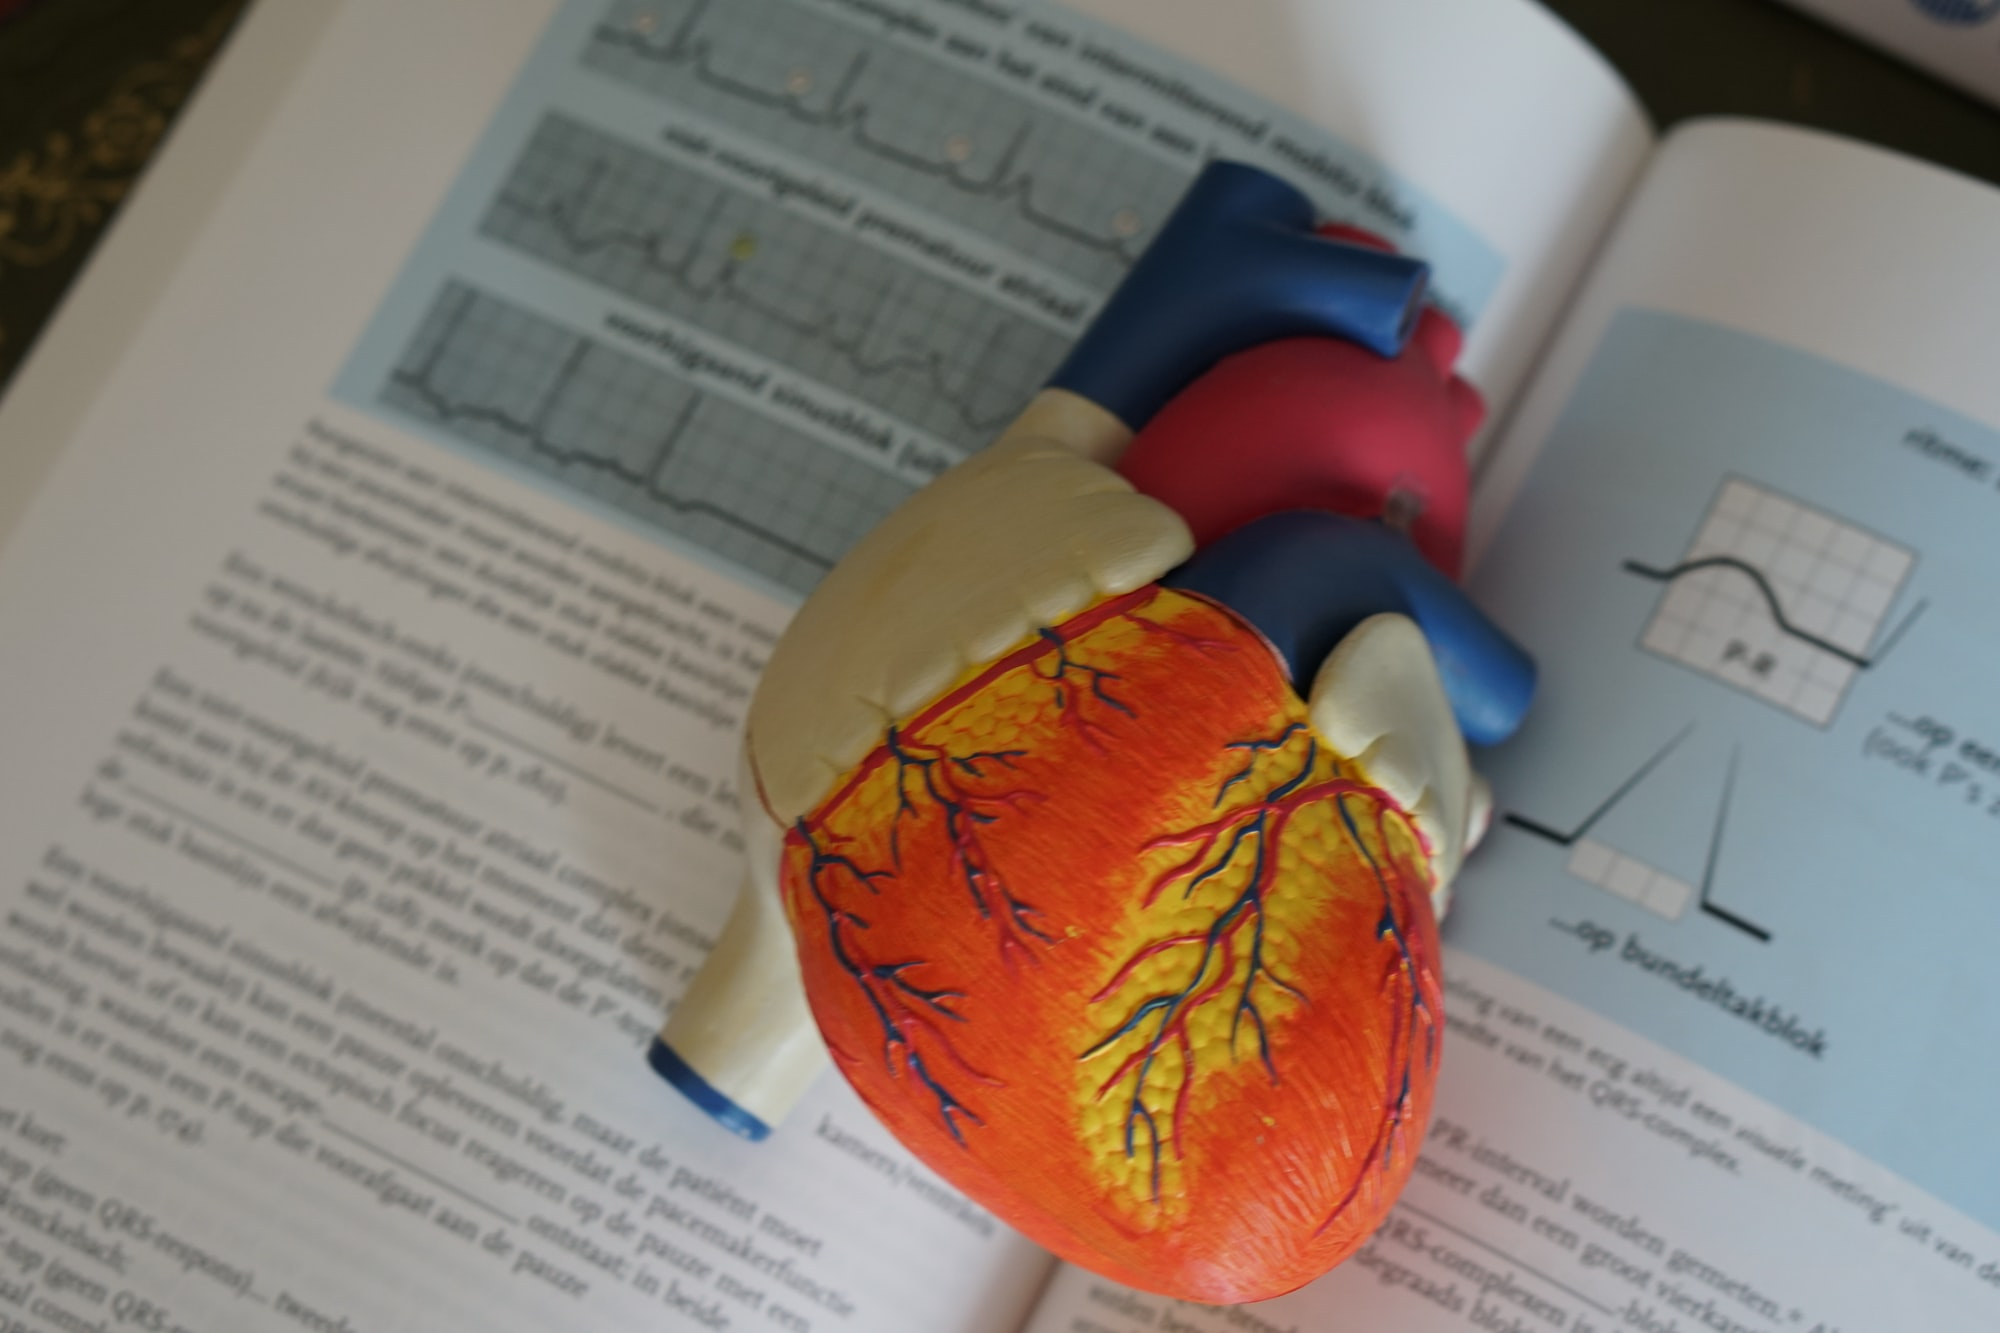 Heart model to explain how the heart works to patients